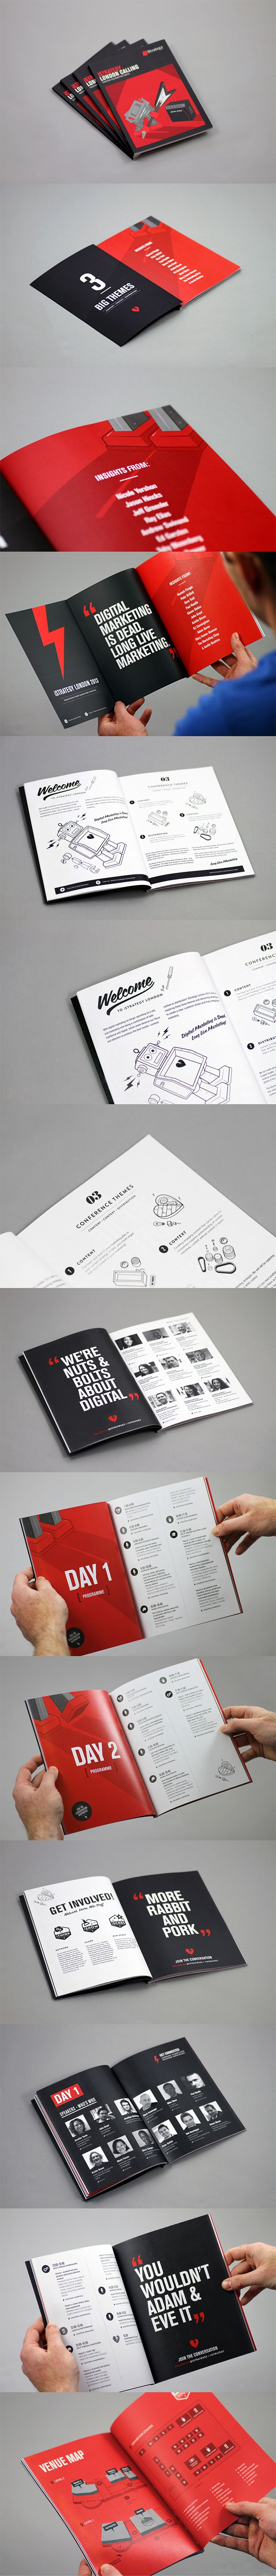 Conference Branding Collateral: London